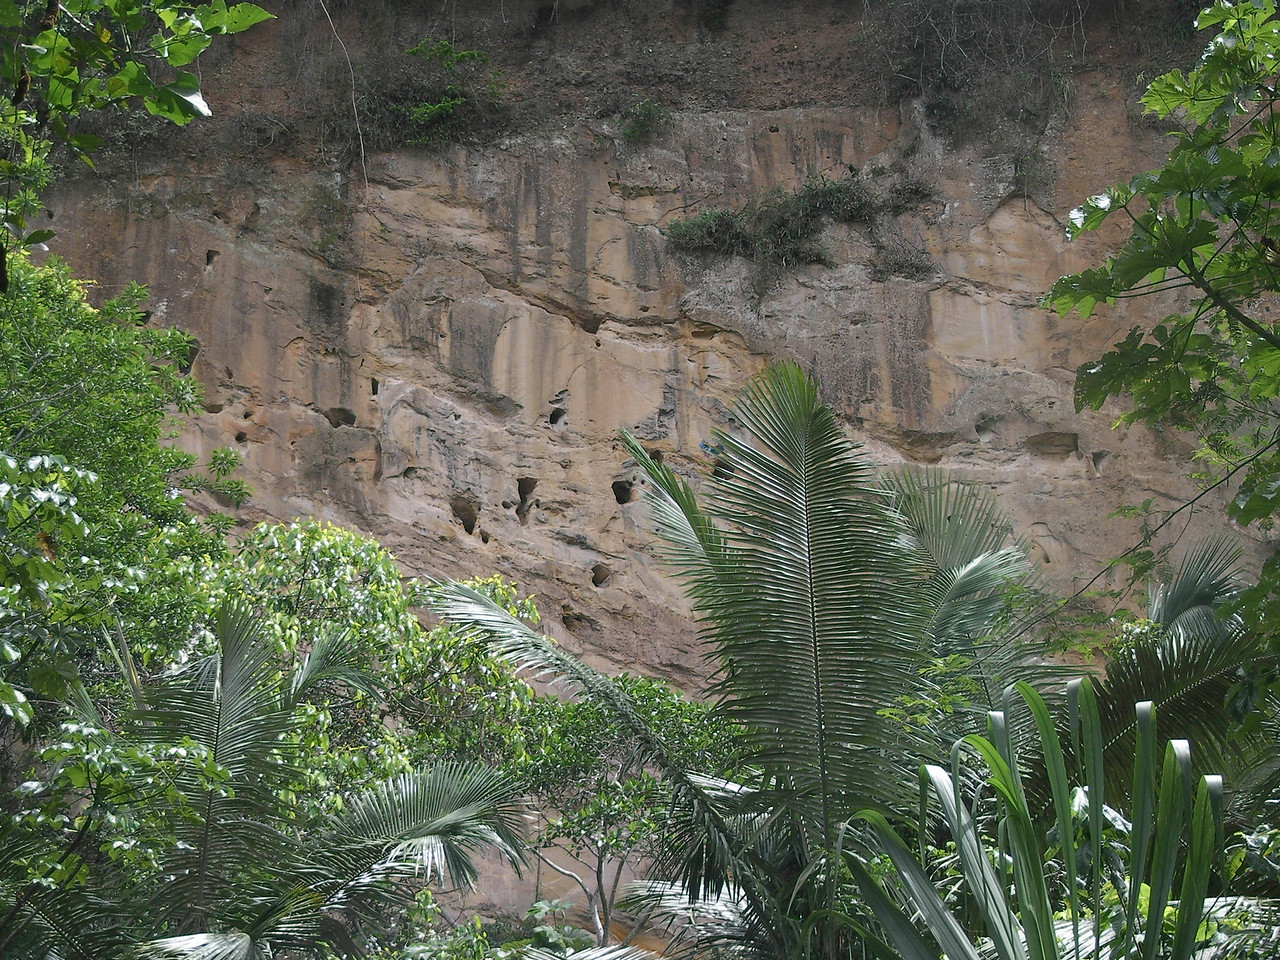 Parrot dwellings in the cliff